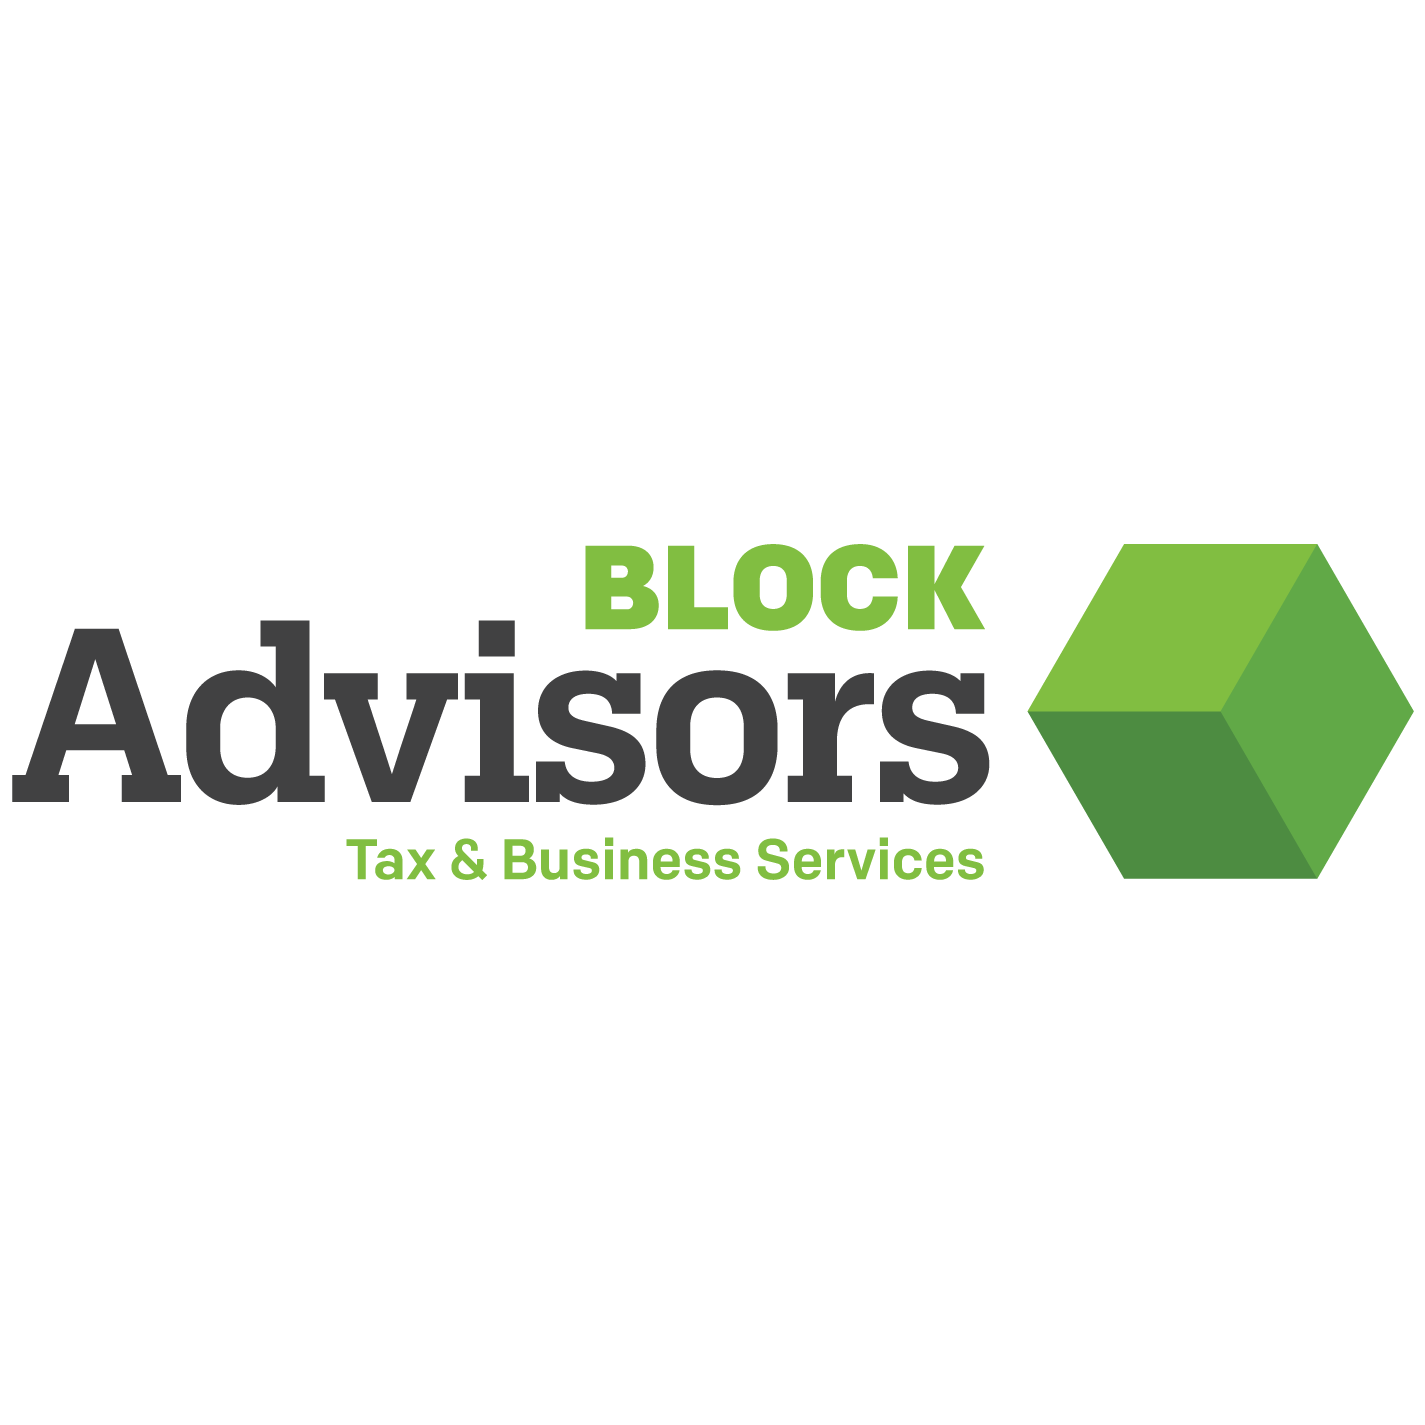 H&R BLOCK - Solana Beach, CA 92075 - (858) 724-0772 | ShowMeLocal.com